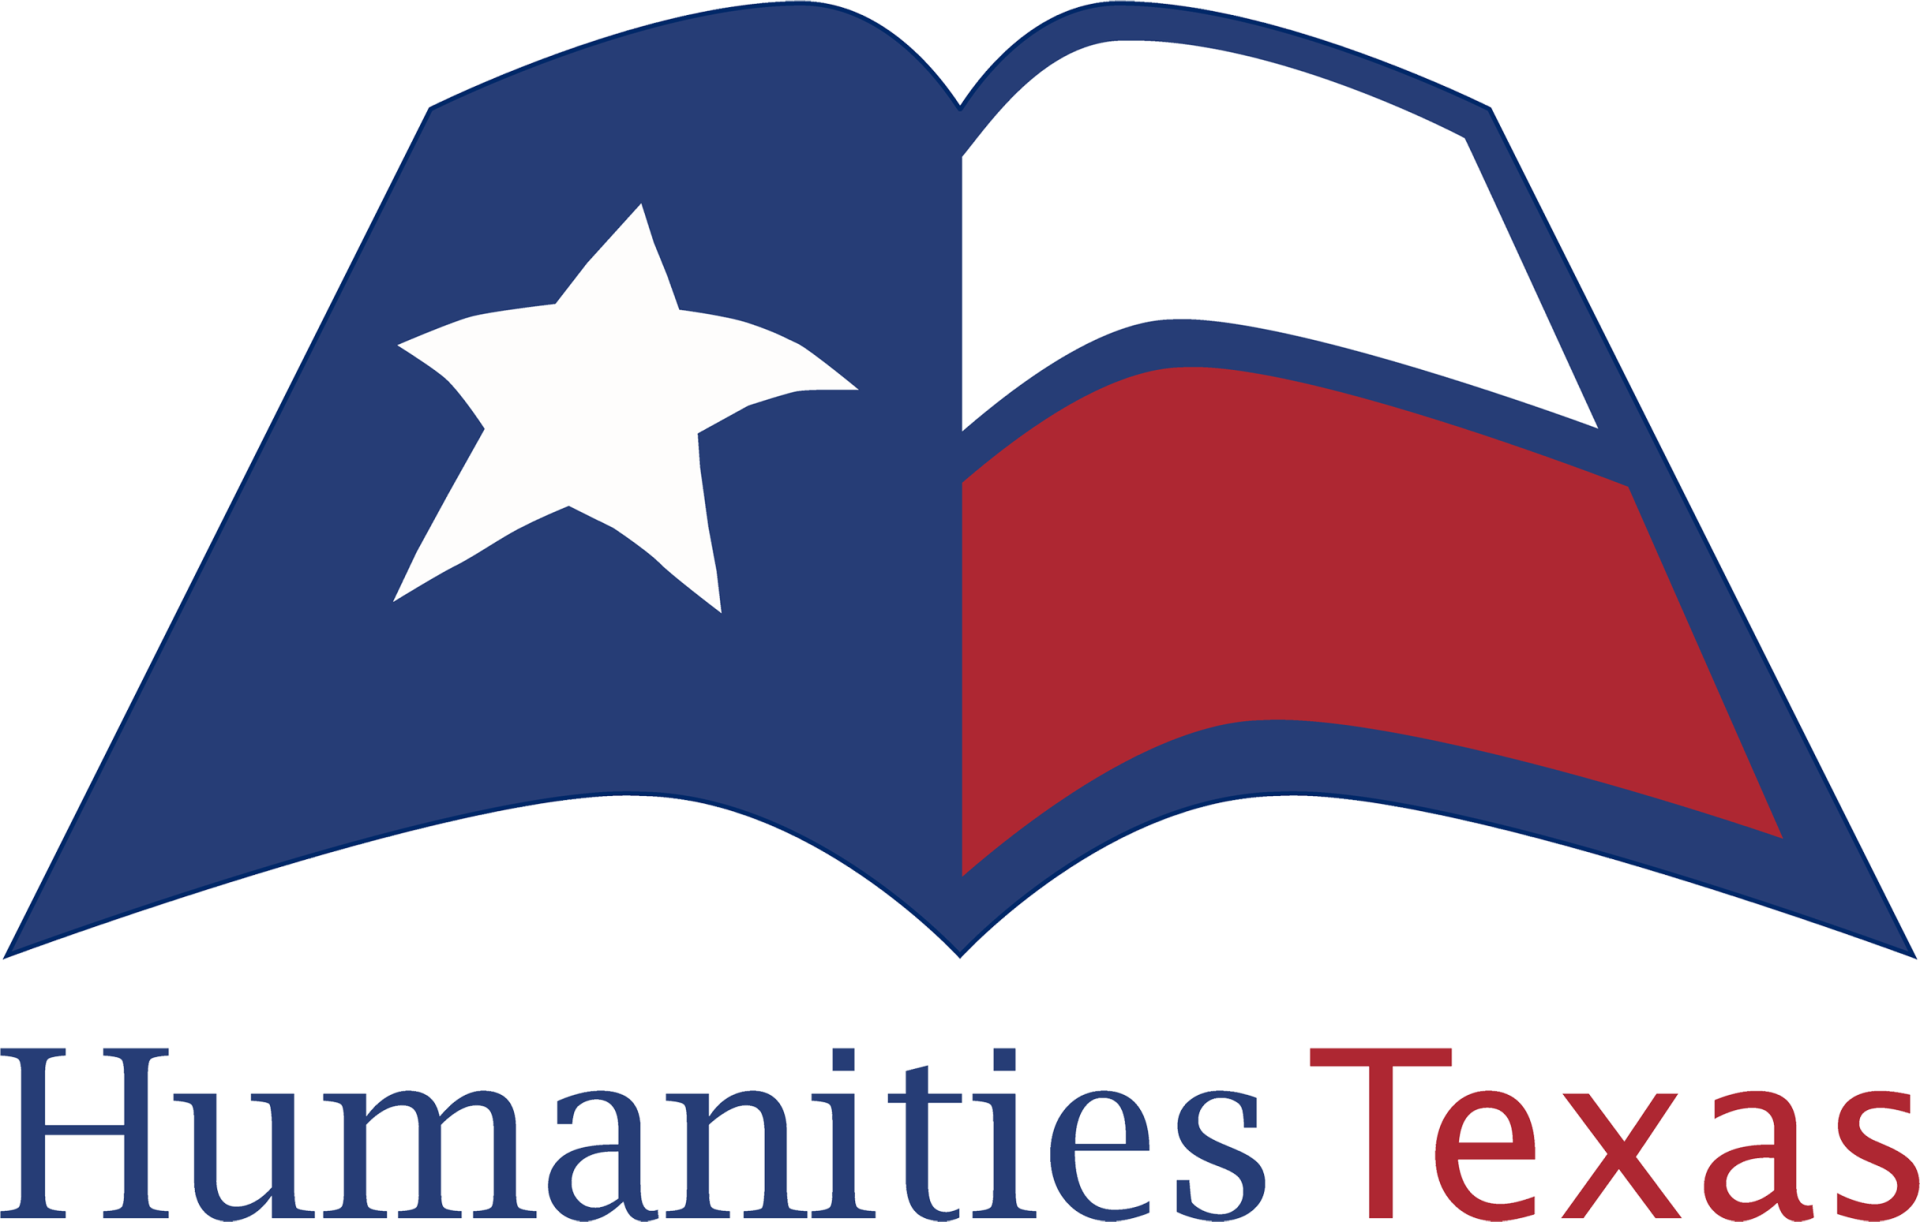 Humanitities Texas